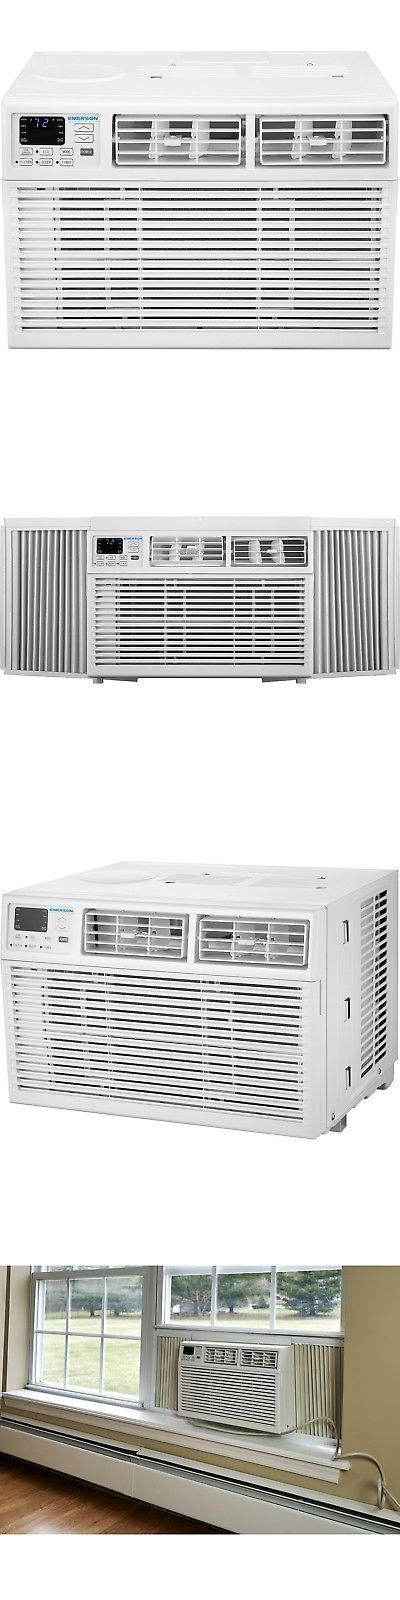 Central Air Conditioners 185108 Emerson Quiet Kool 10 000 Btu Window Mount Room Window Air Conditioner Room Air Conditioner Central Air Conditioners